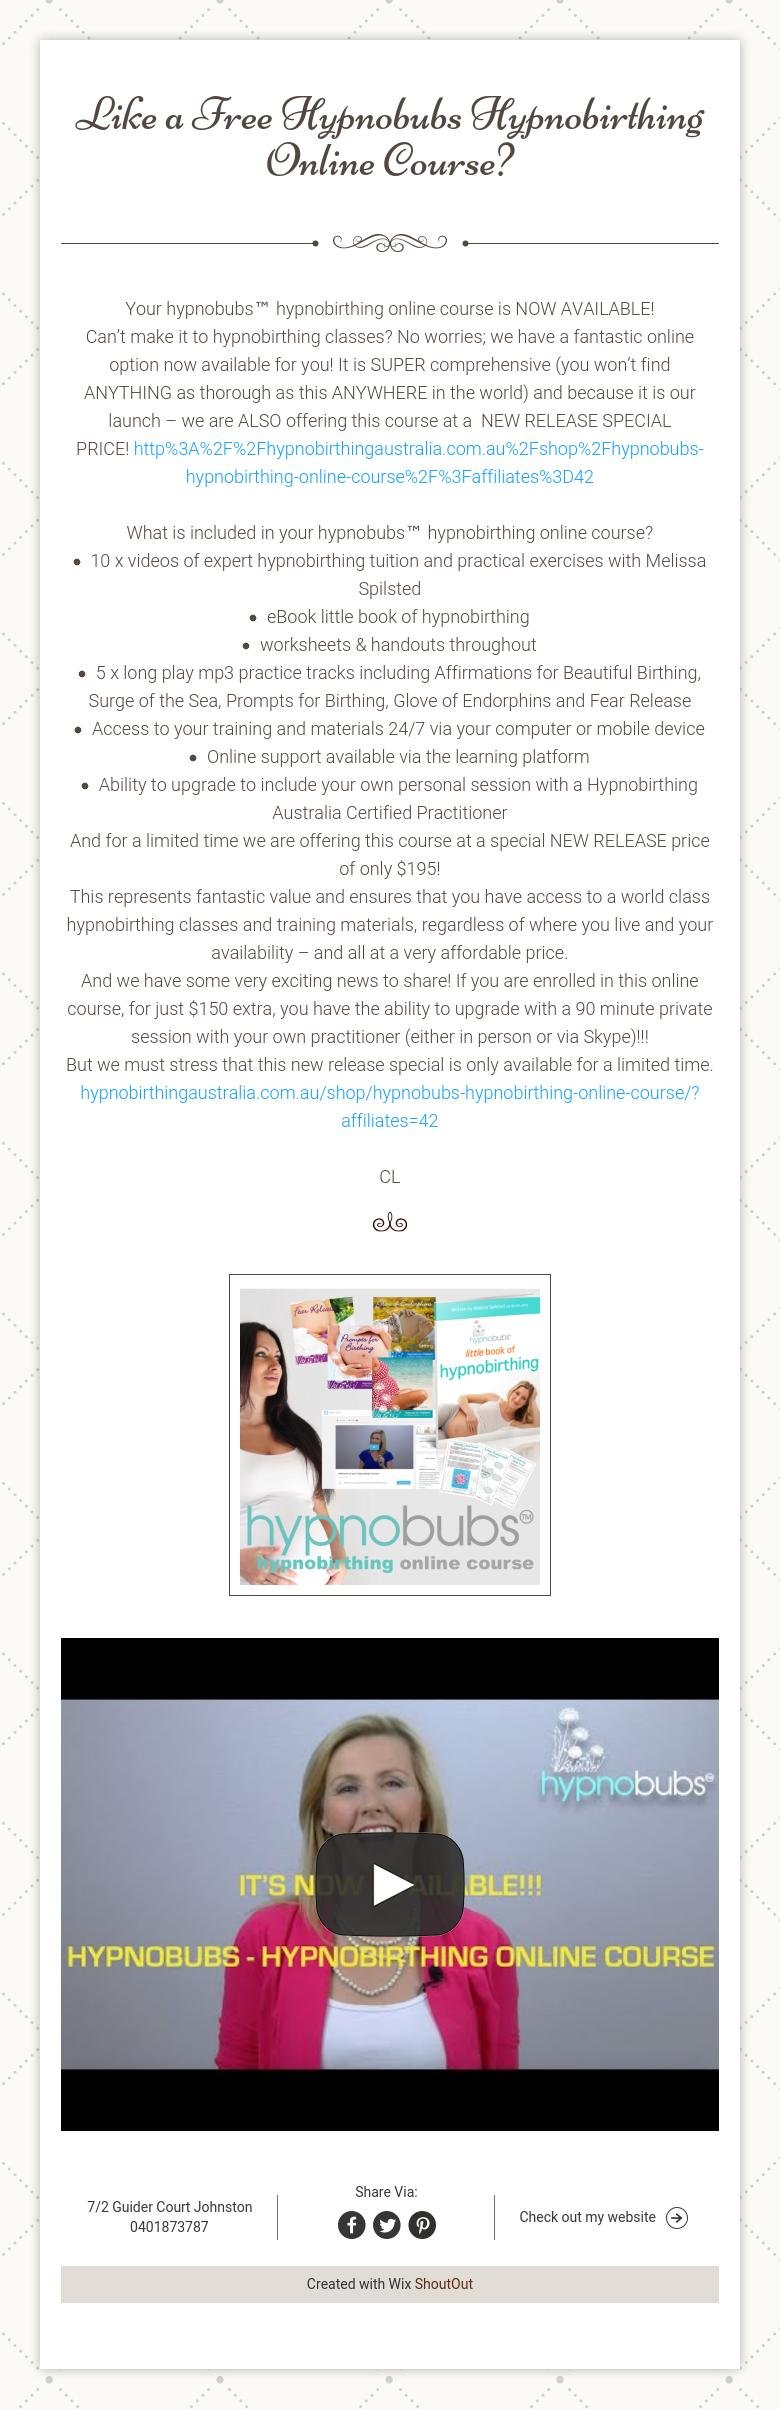 Like a free hypnobubs hypnobirthing online course